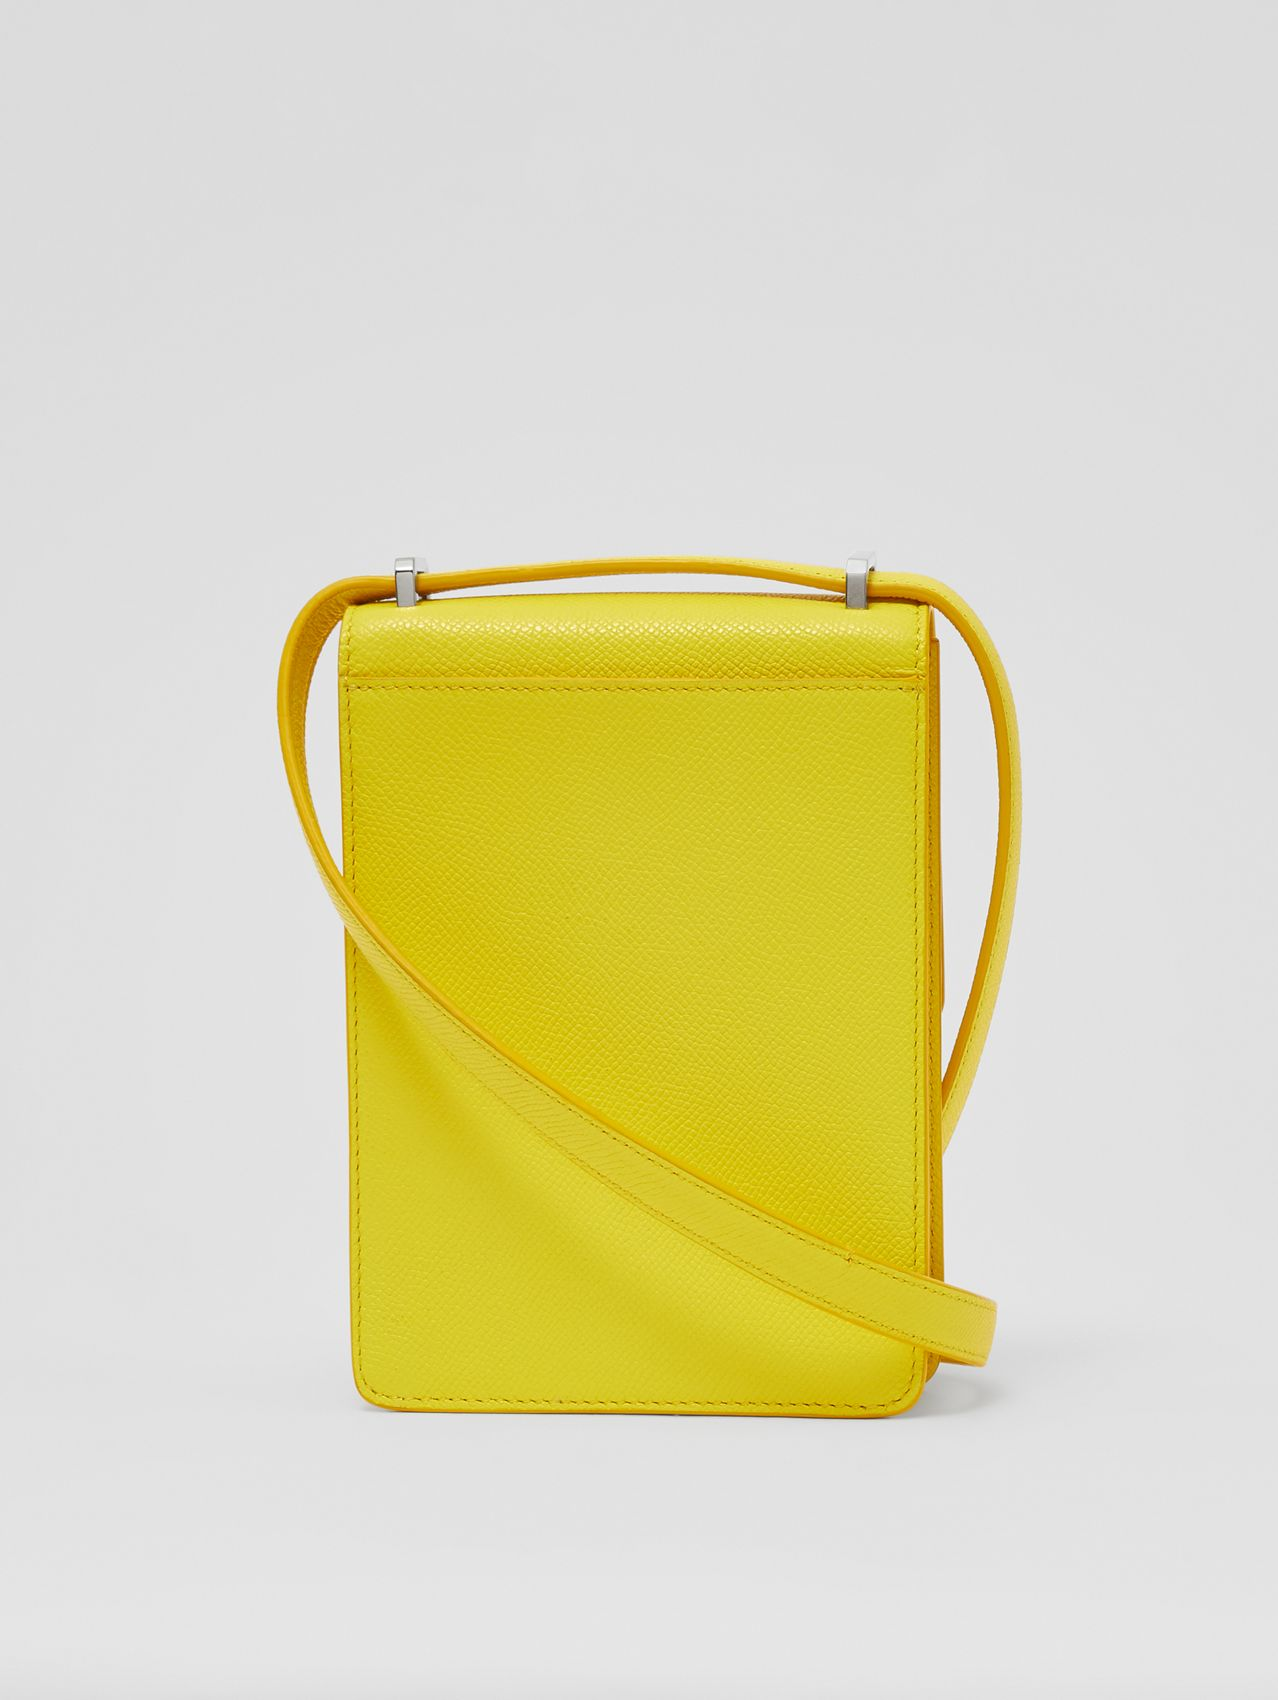 Grainy Leather Robin Bag in Marigold Yellow